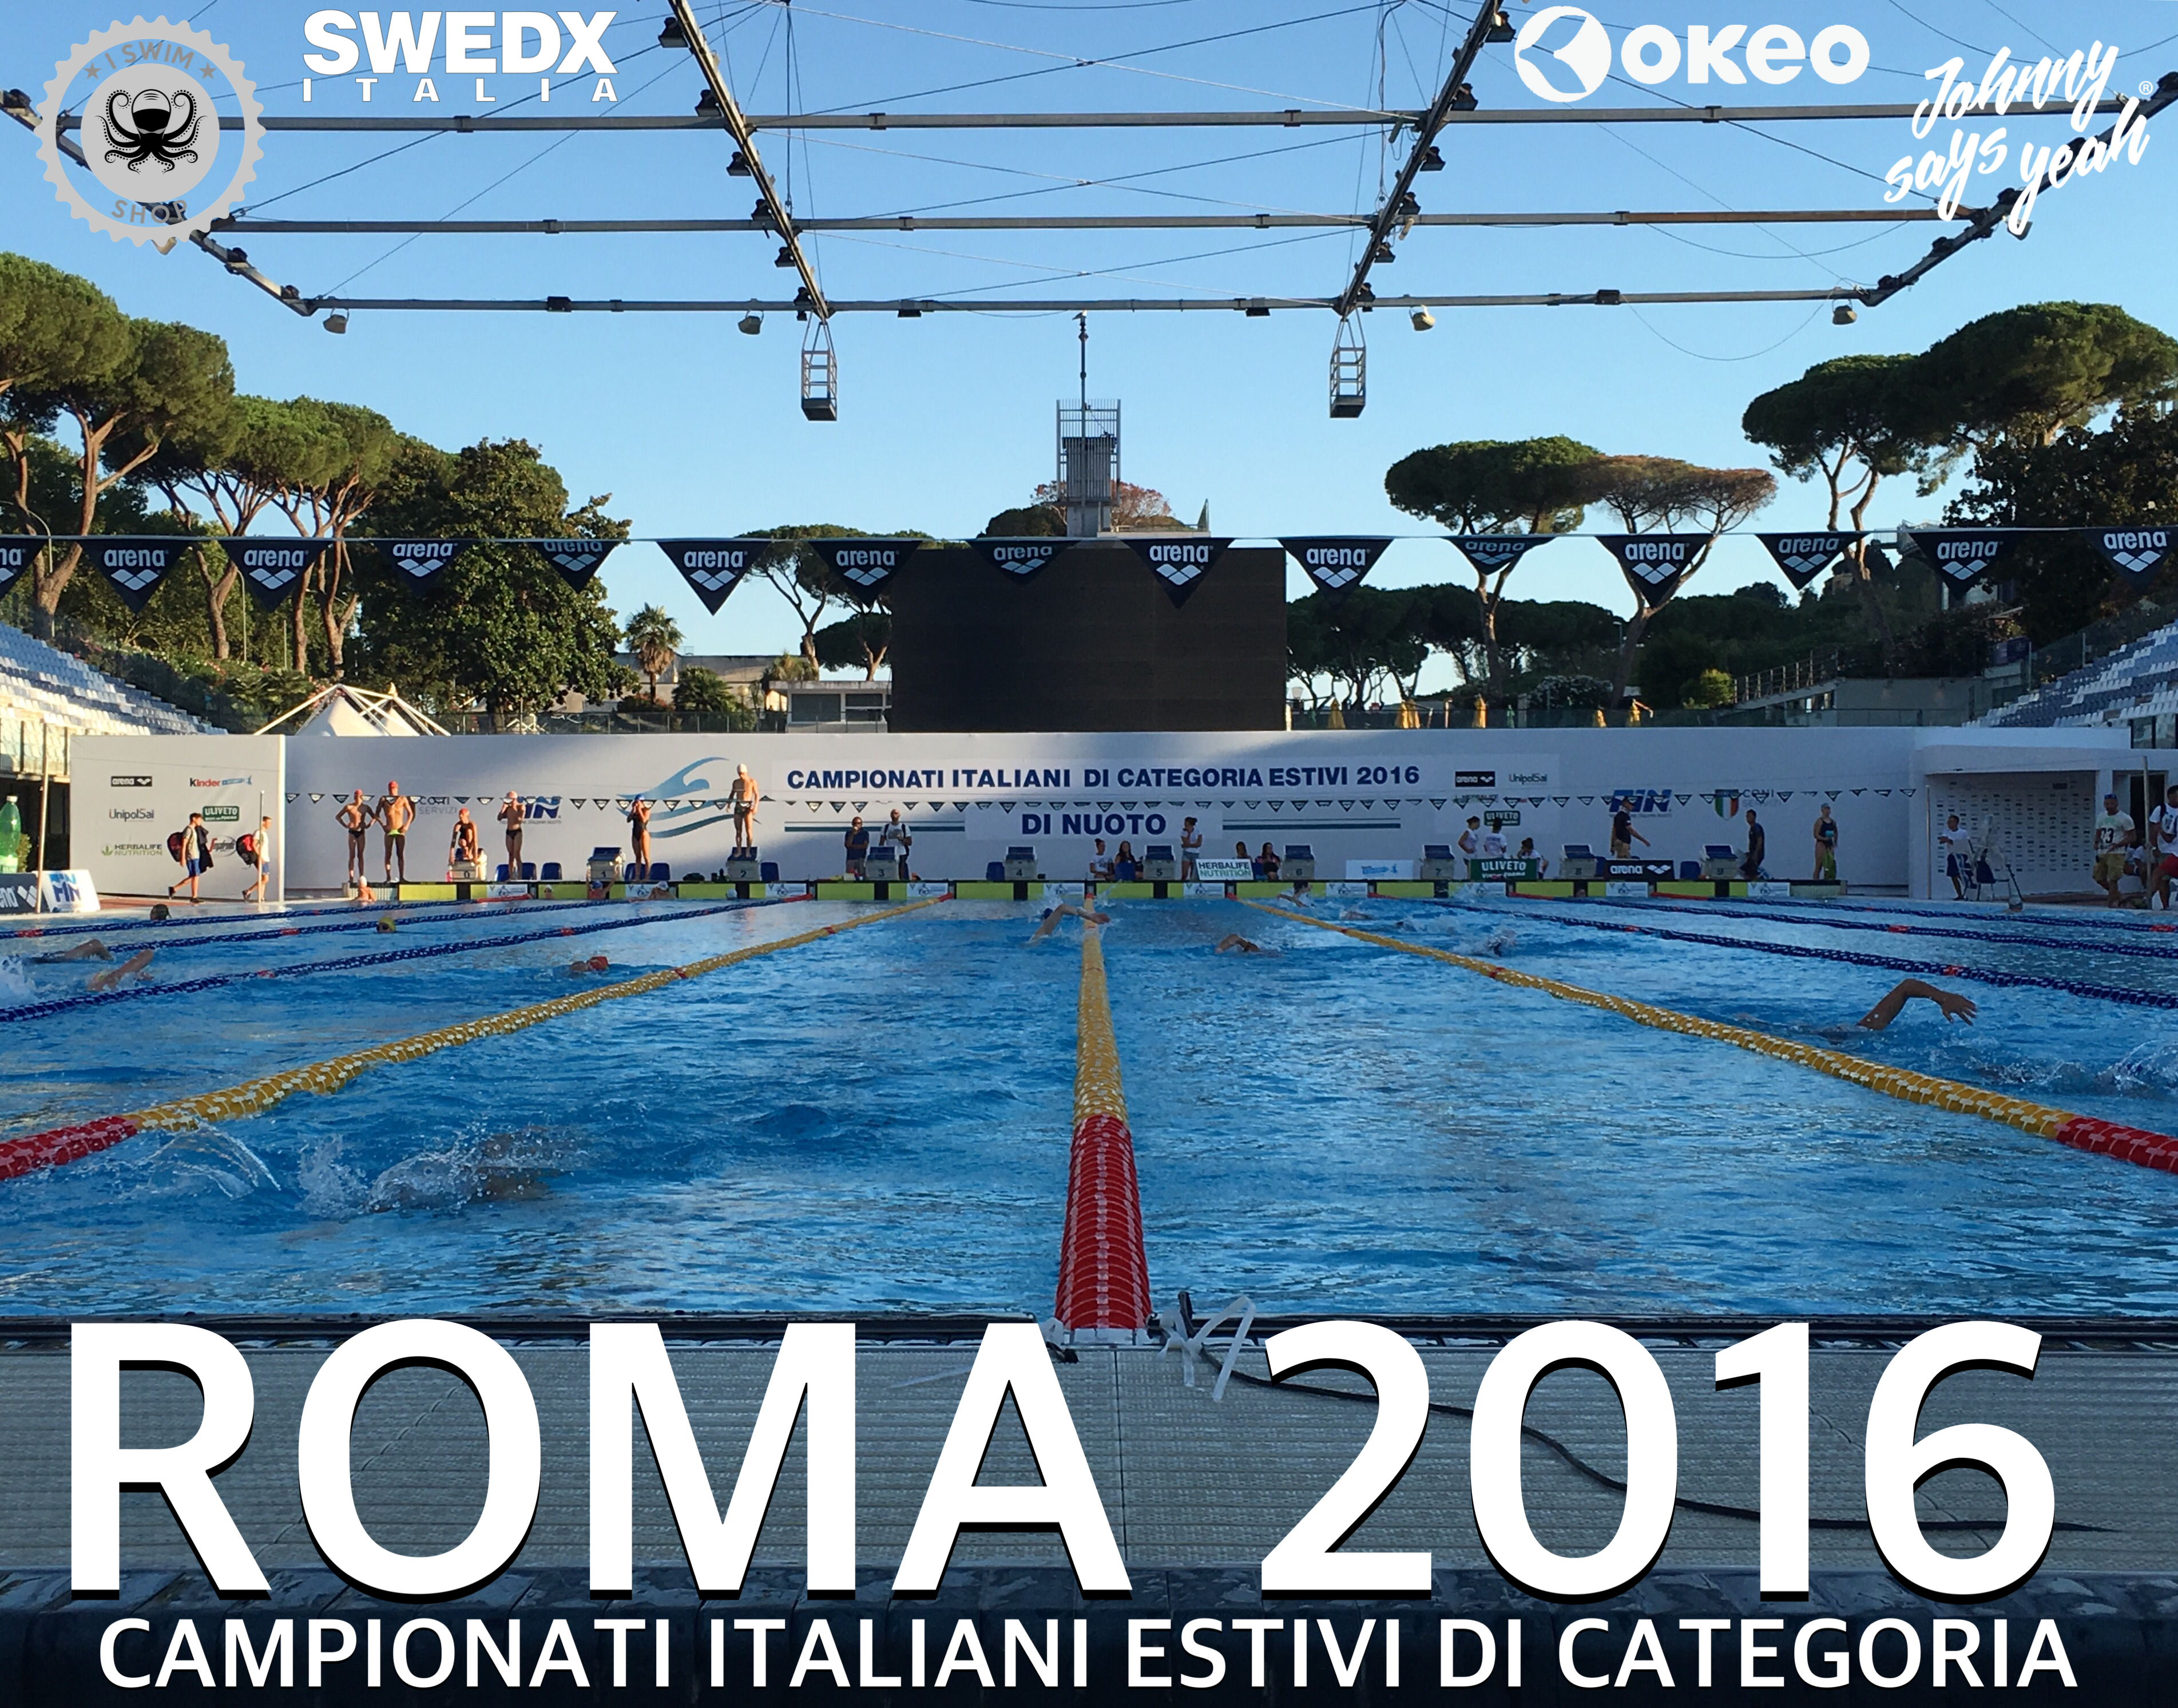 Vasca Da 25 Metri Tempi : Swimming channel